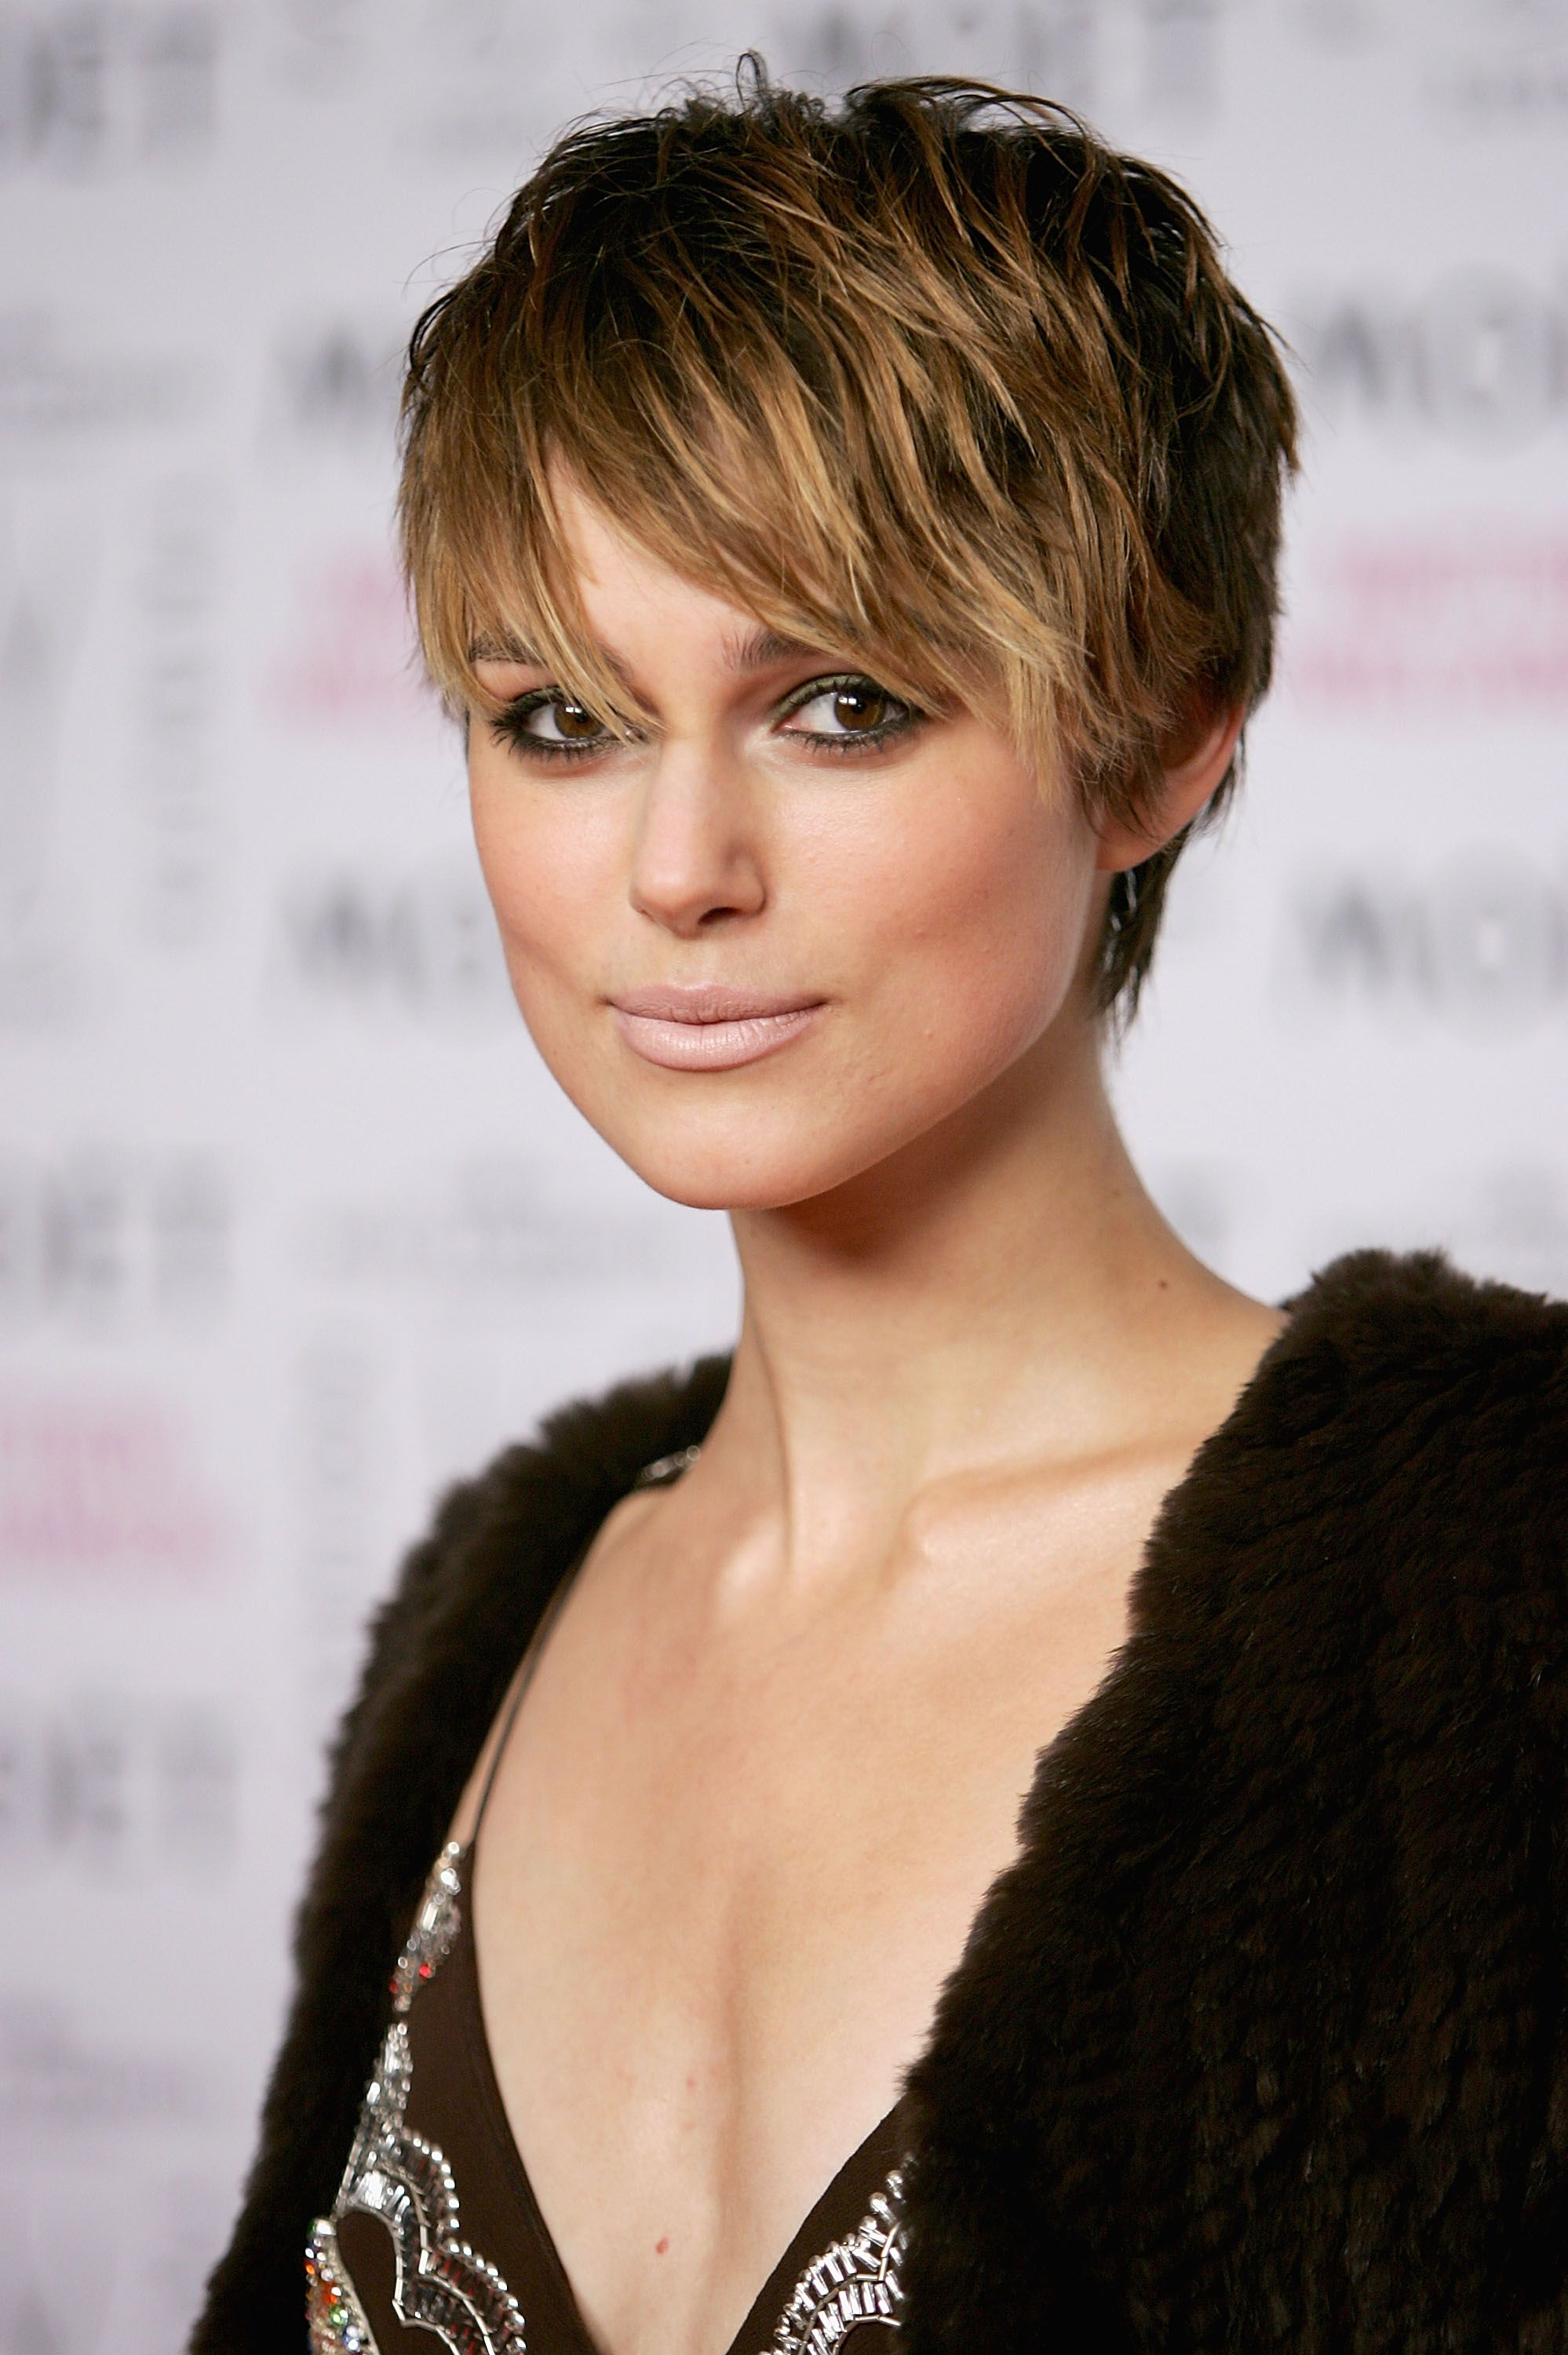 10 Best Short Hairstyles, Haircuts & Short Hair Ideas for 10